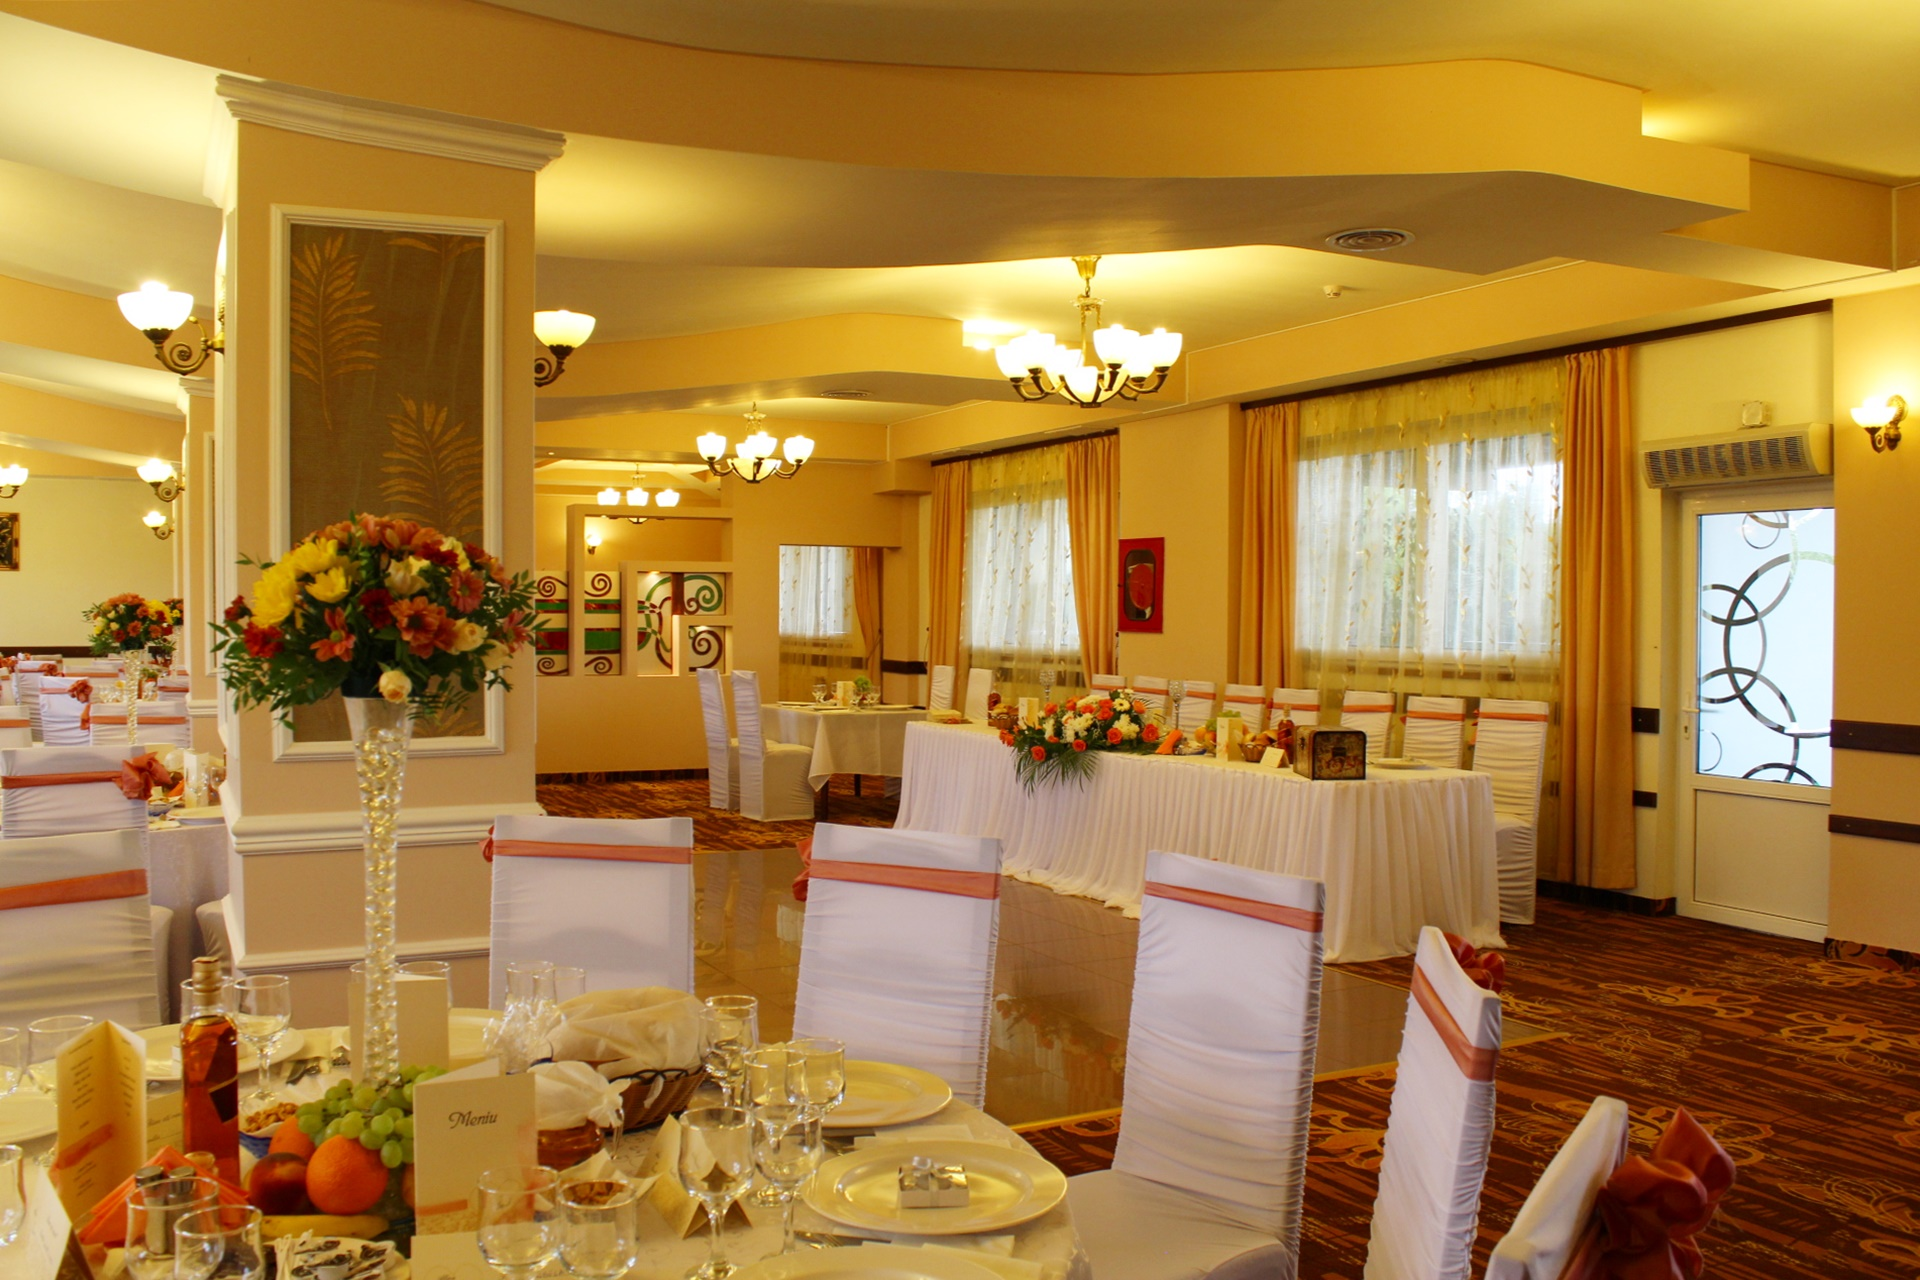 Sala-Panoramic-Restaurant-Parc-5.jpg